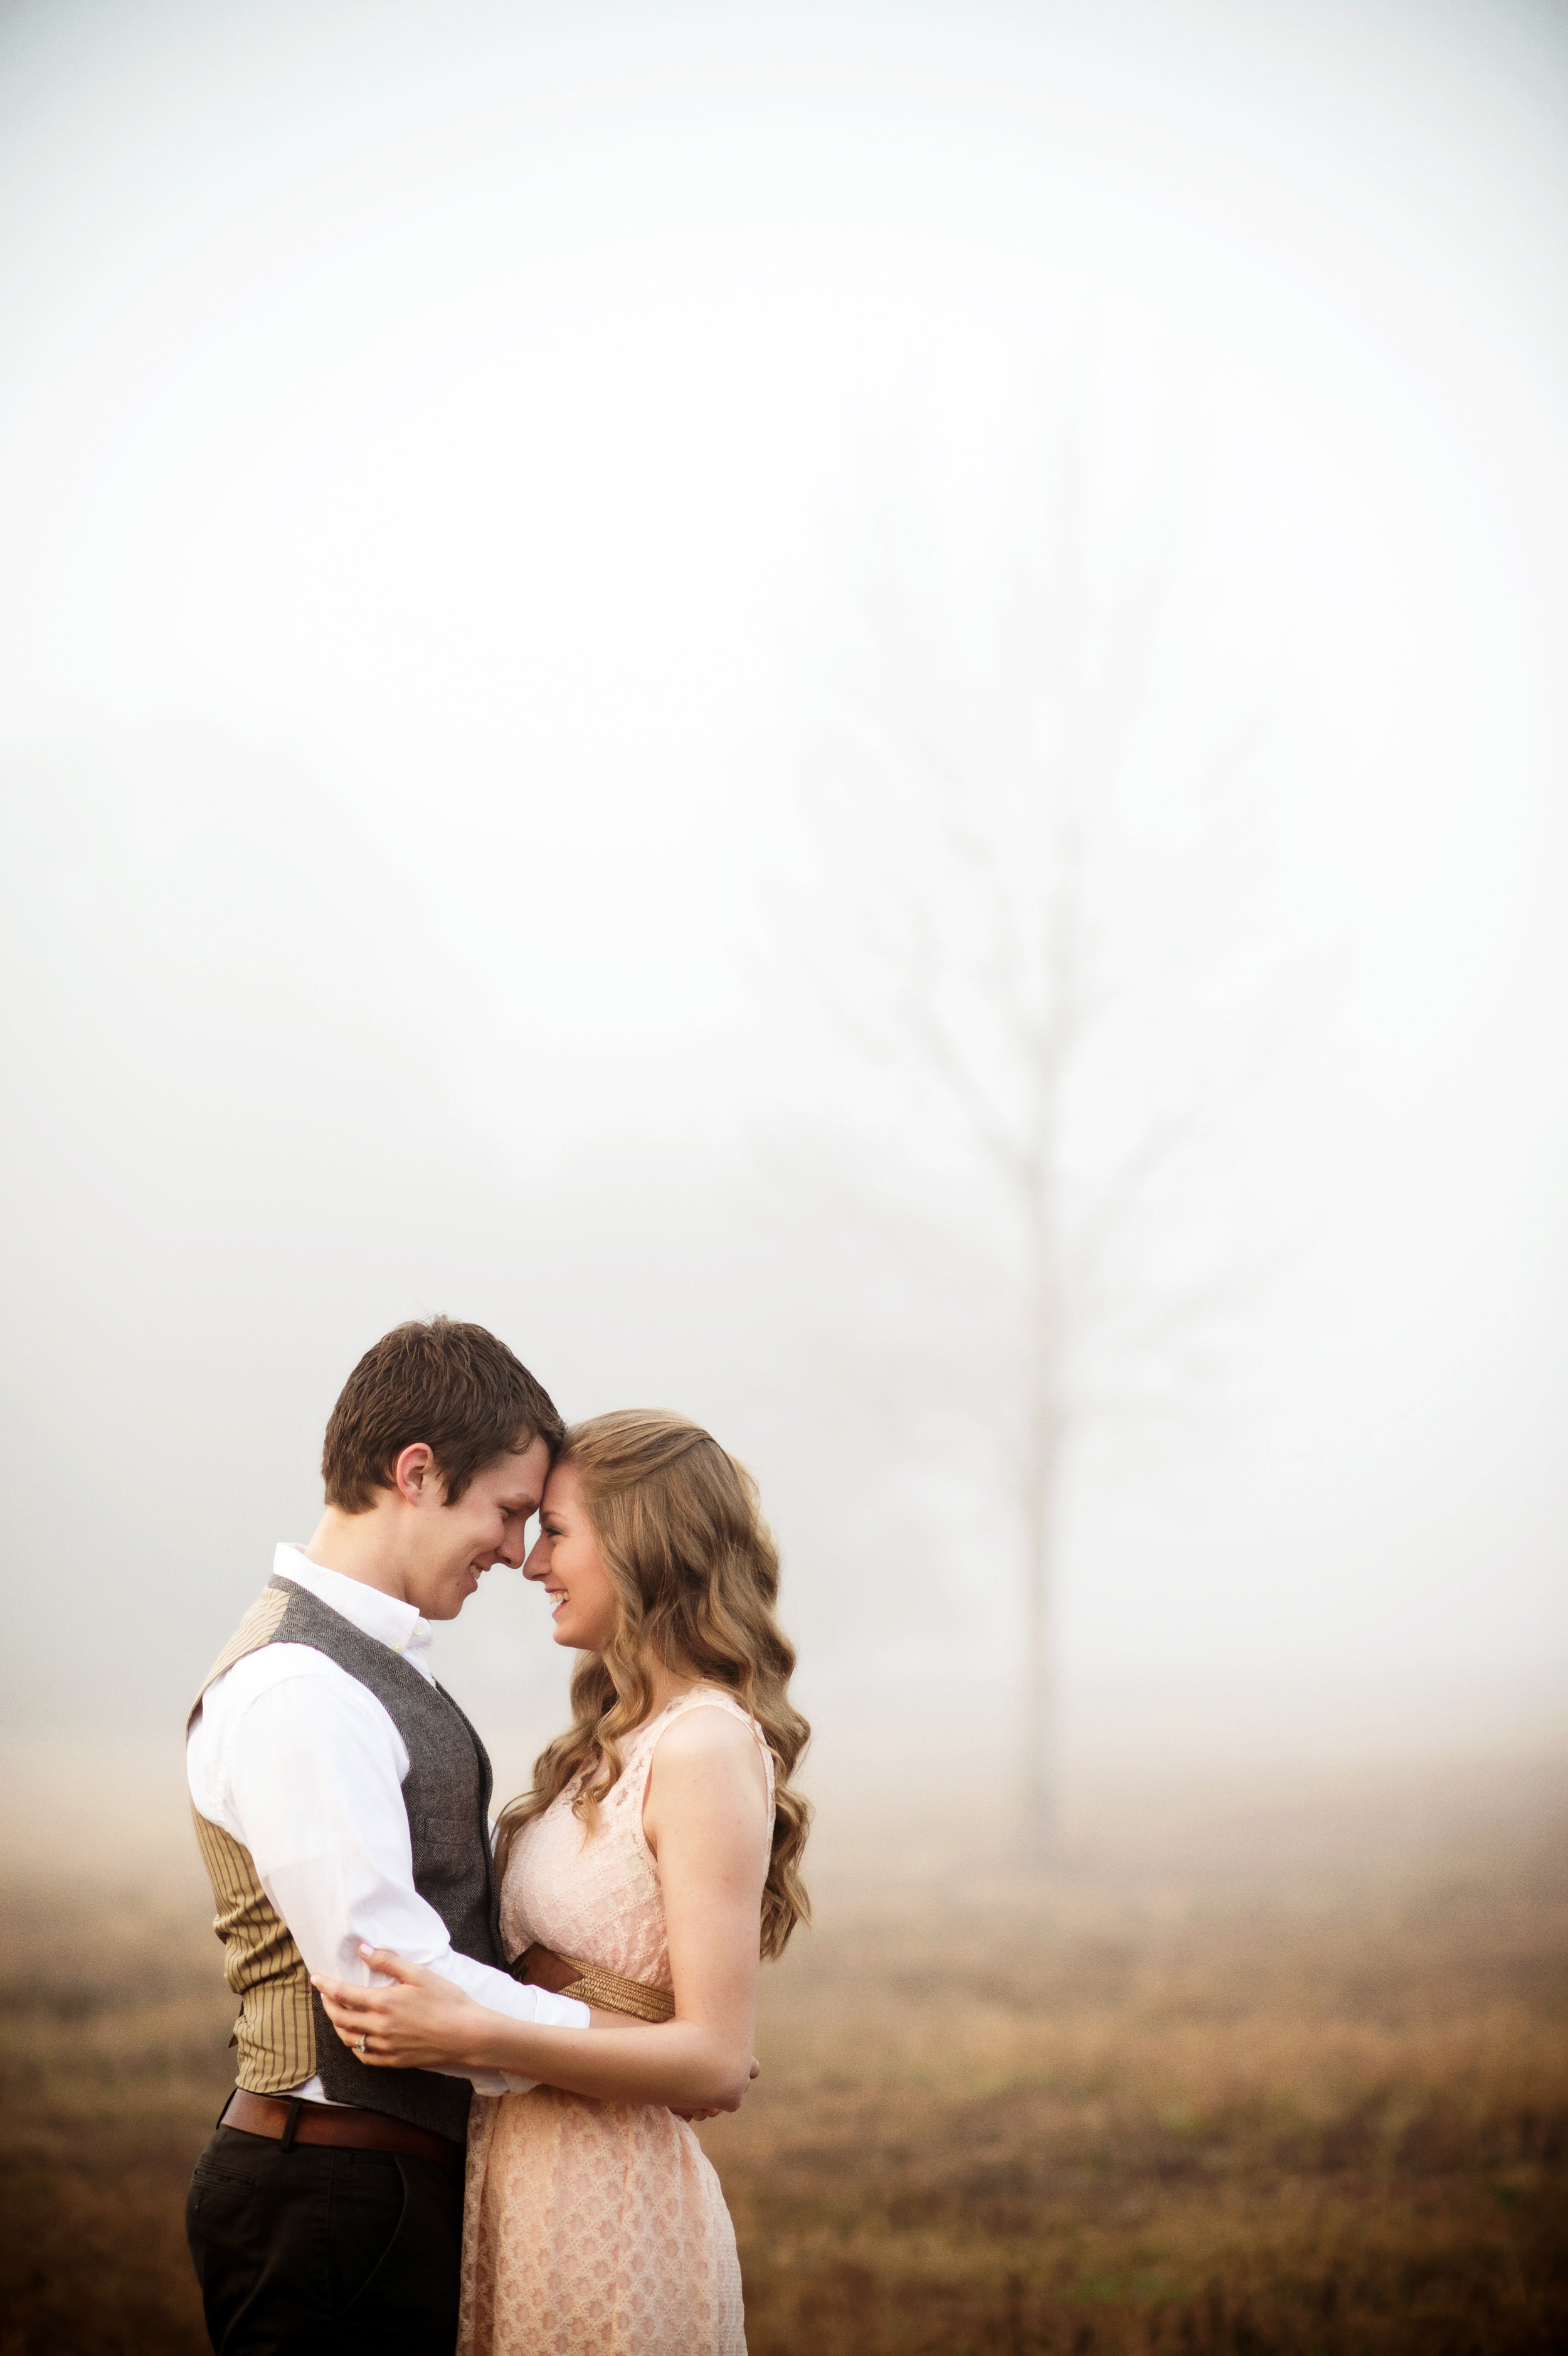 Outdoor Engagement Photography in a field at Sunrise with trees